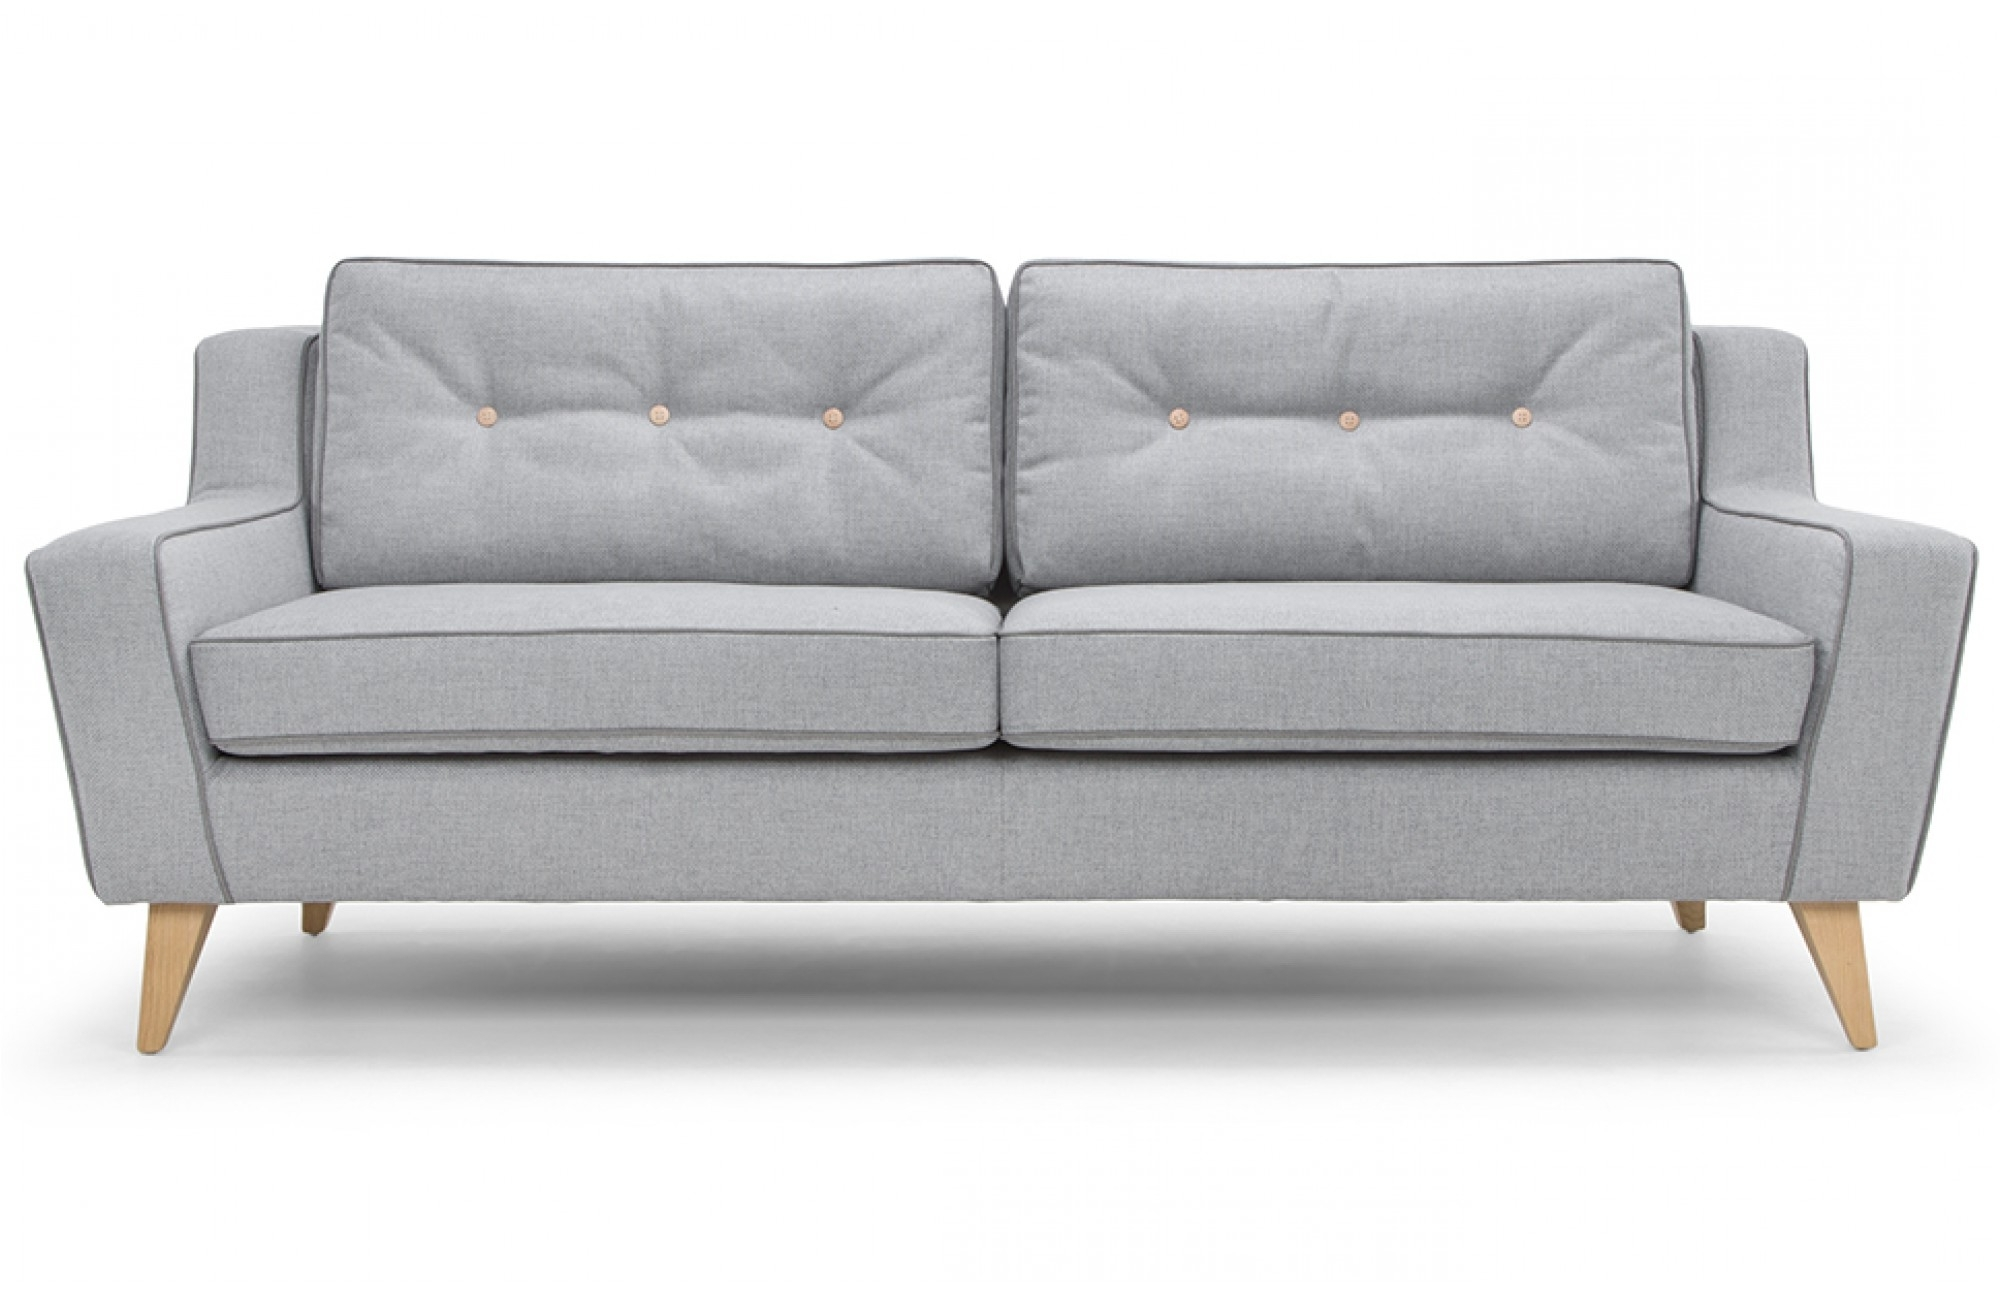 Preferred Stone Grey 3 Seater Sofa – Lounge Furniture – Out & Out Original In Modern 3 Seater Sofas (View 6 of 20)